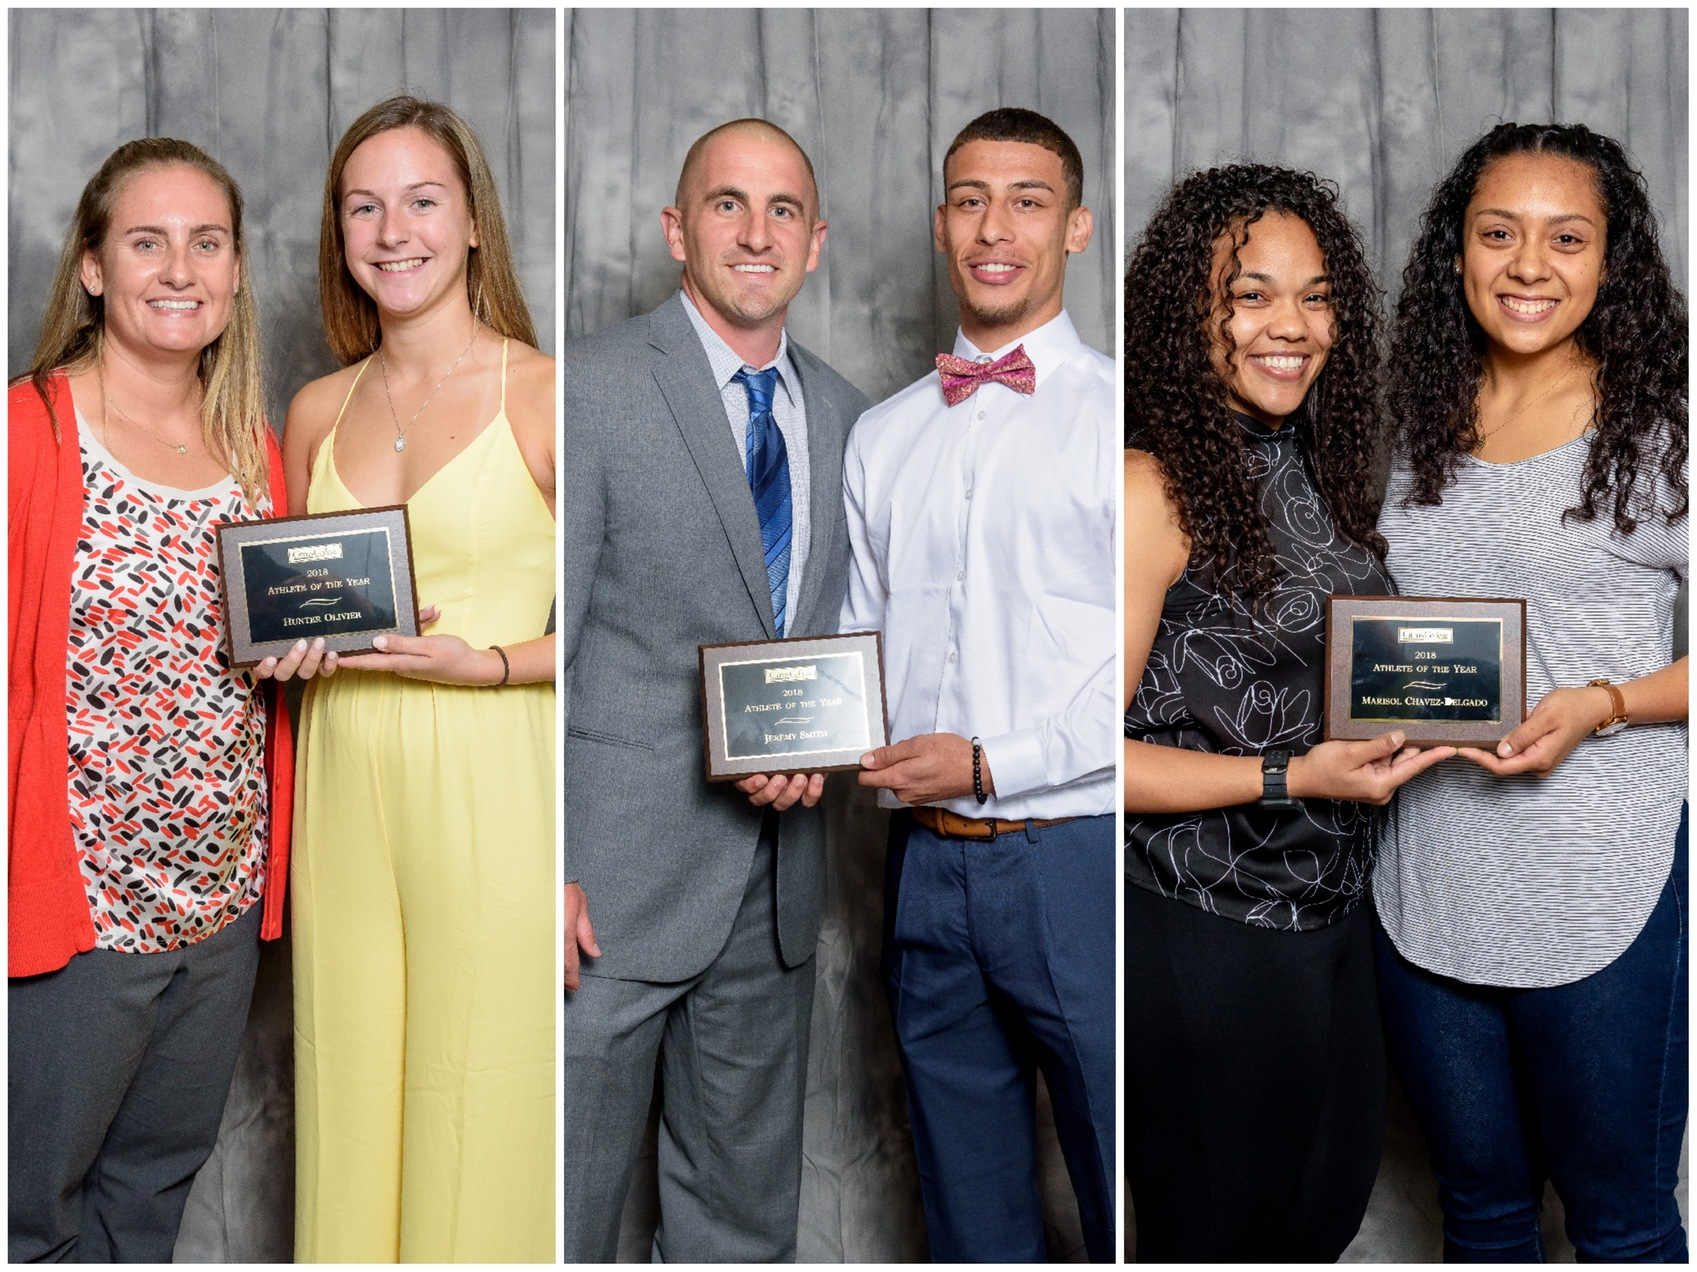 Pictured: 2017-2018 Citrus College Male and Female Student Athletes of the Year and their coaches. 